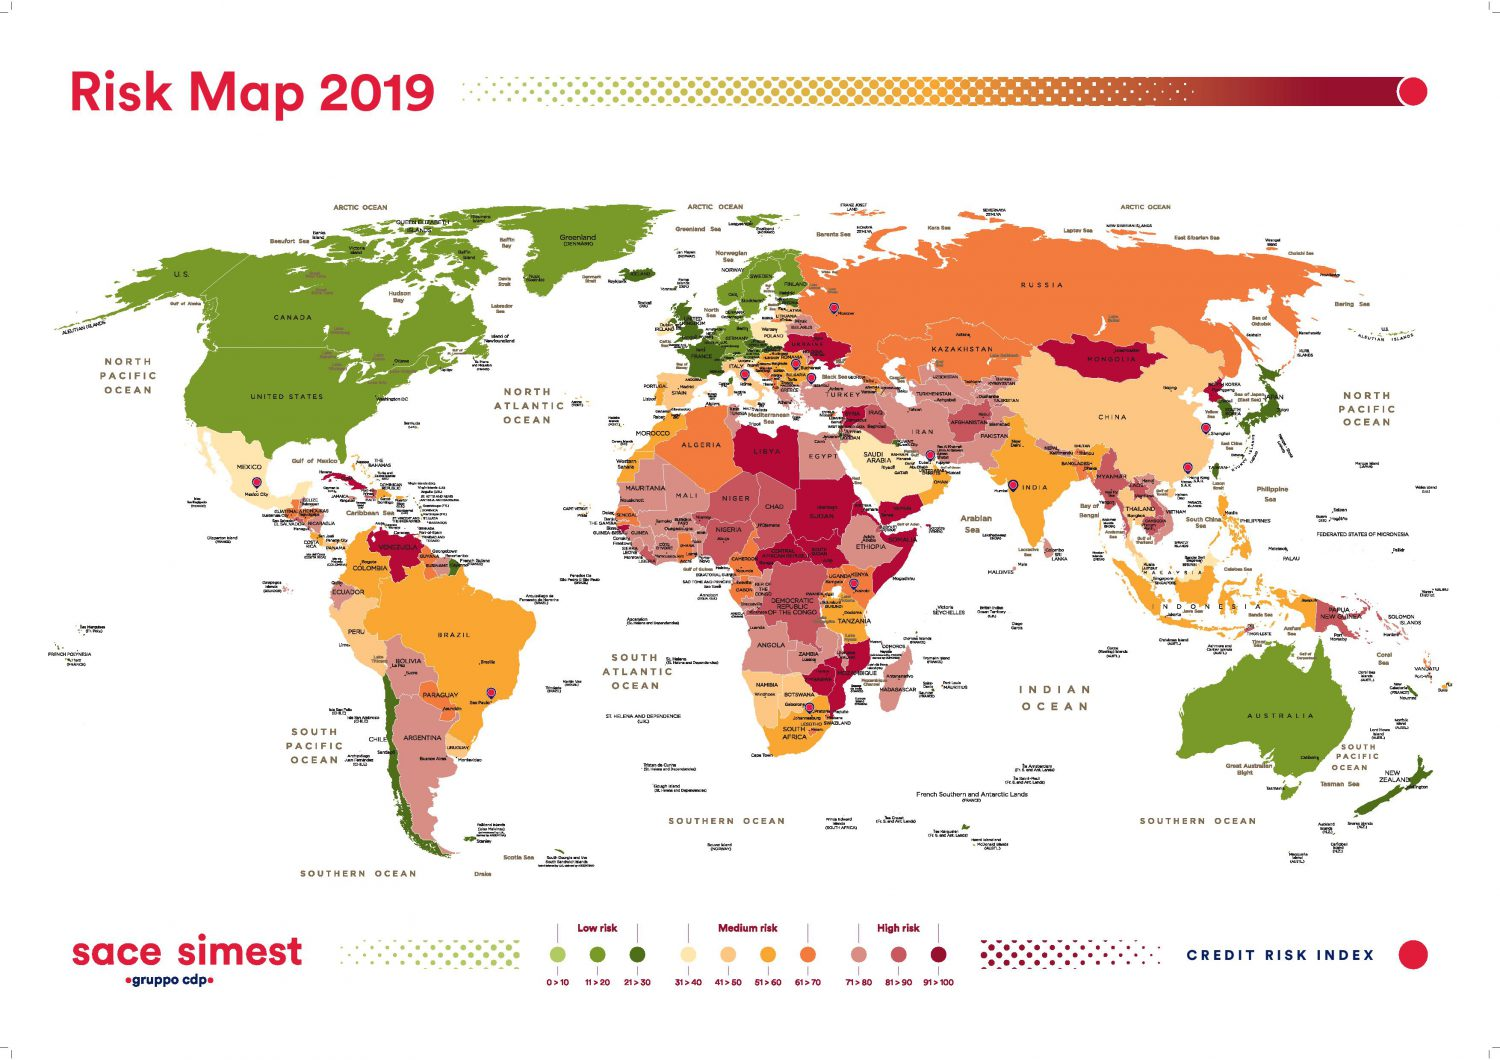 SACE SIMEST - Risk Map 2019 Imc